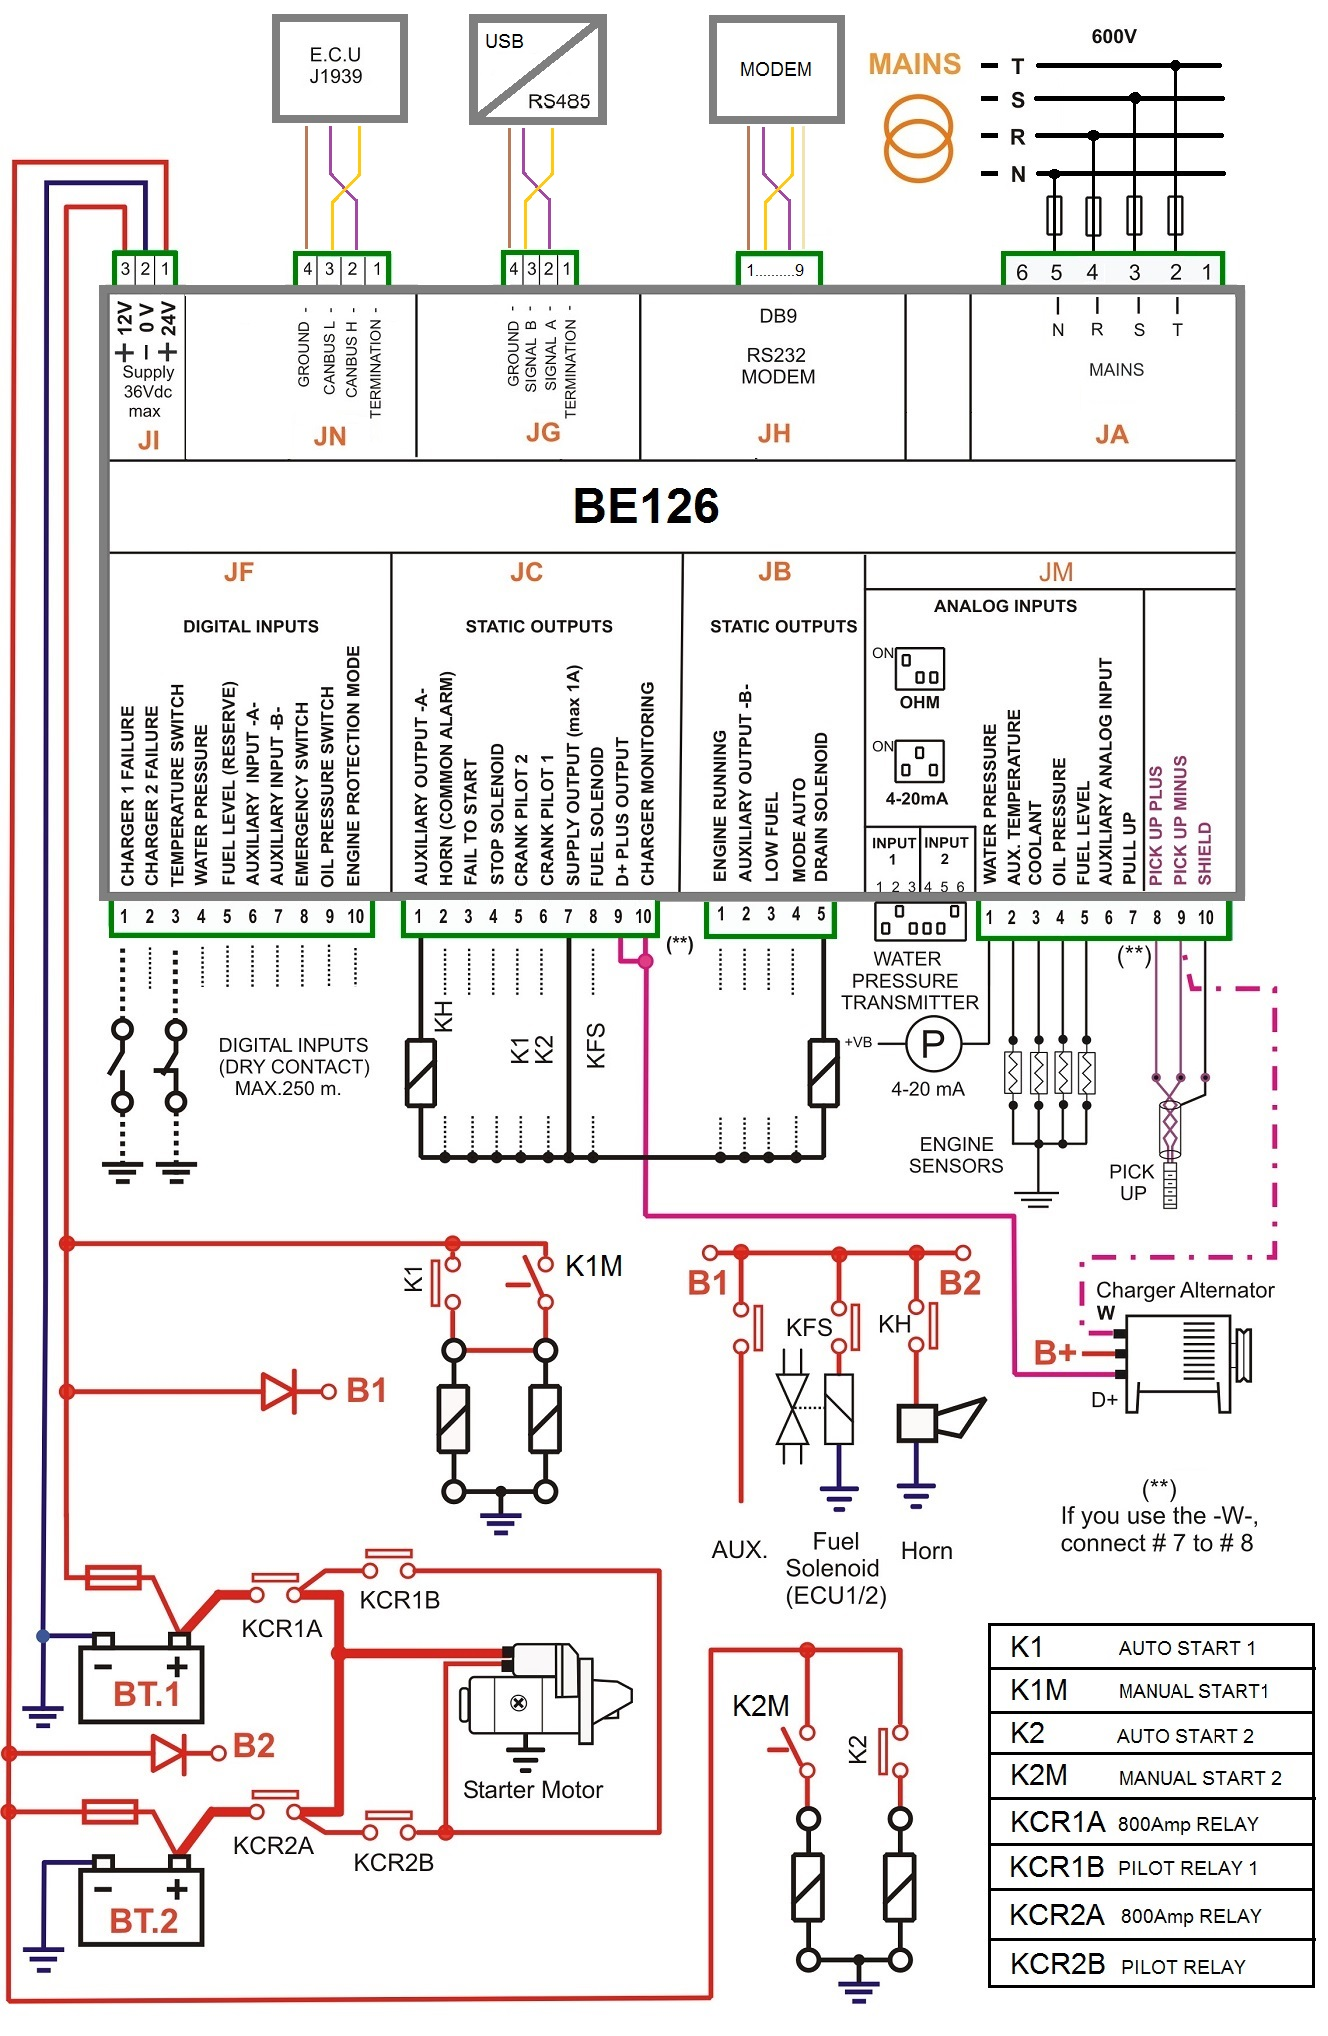 547923 Heat Pump Thermostat Wiring further Wiring Ceiling Smoke Alarm likewise Wiring A Smoke Alarm Diagram as well Addressable Fire Alarm System Wiring Diagram in addition Fire alarm system heat detector. on simplex fire alarm wiring diagrams